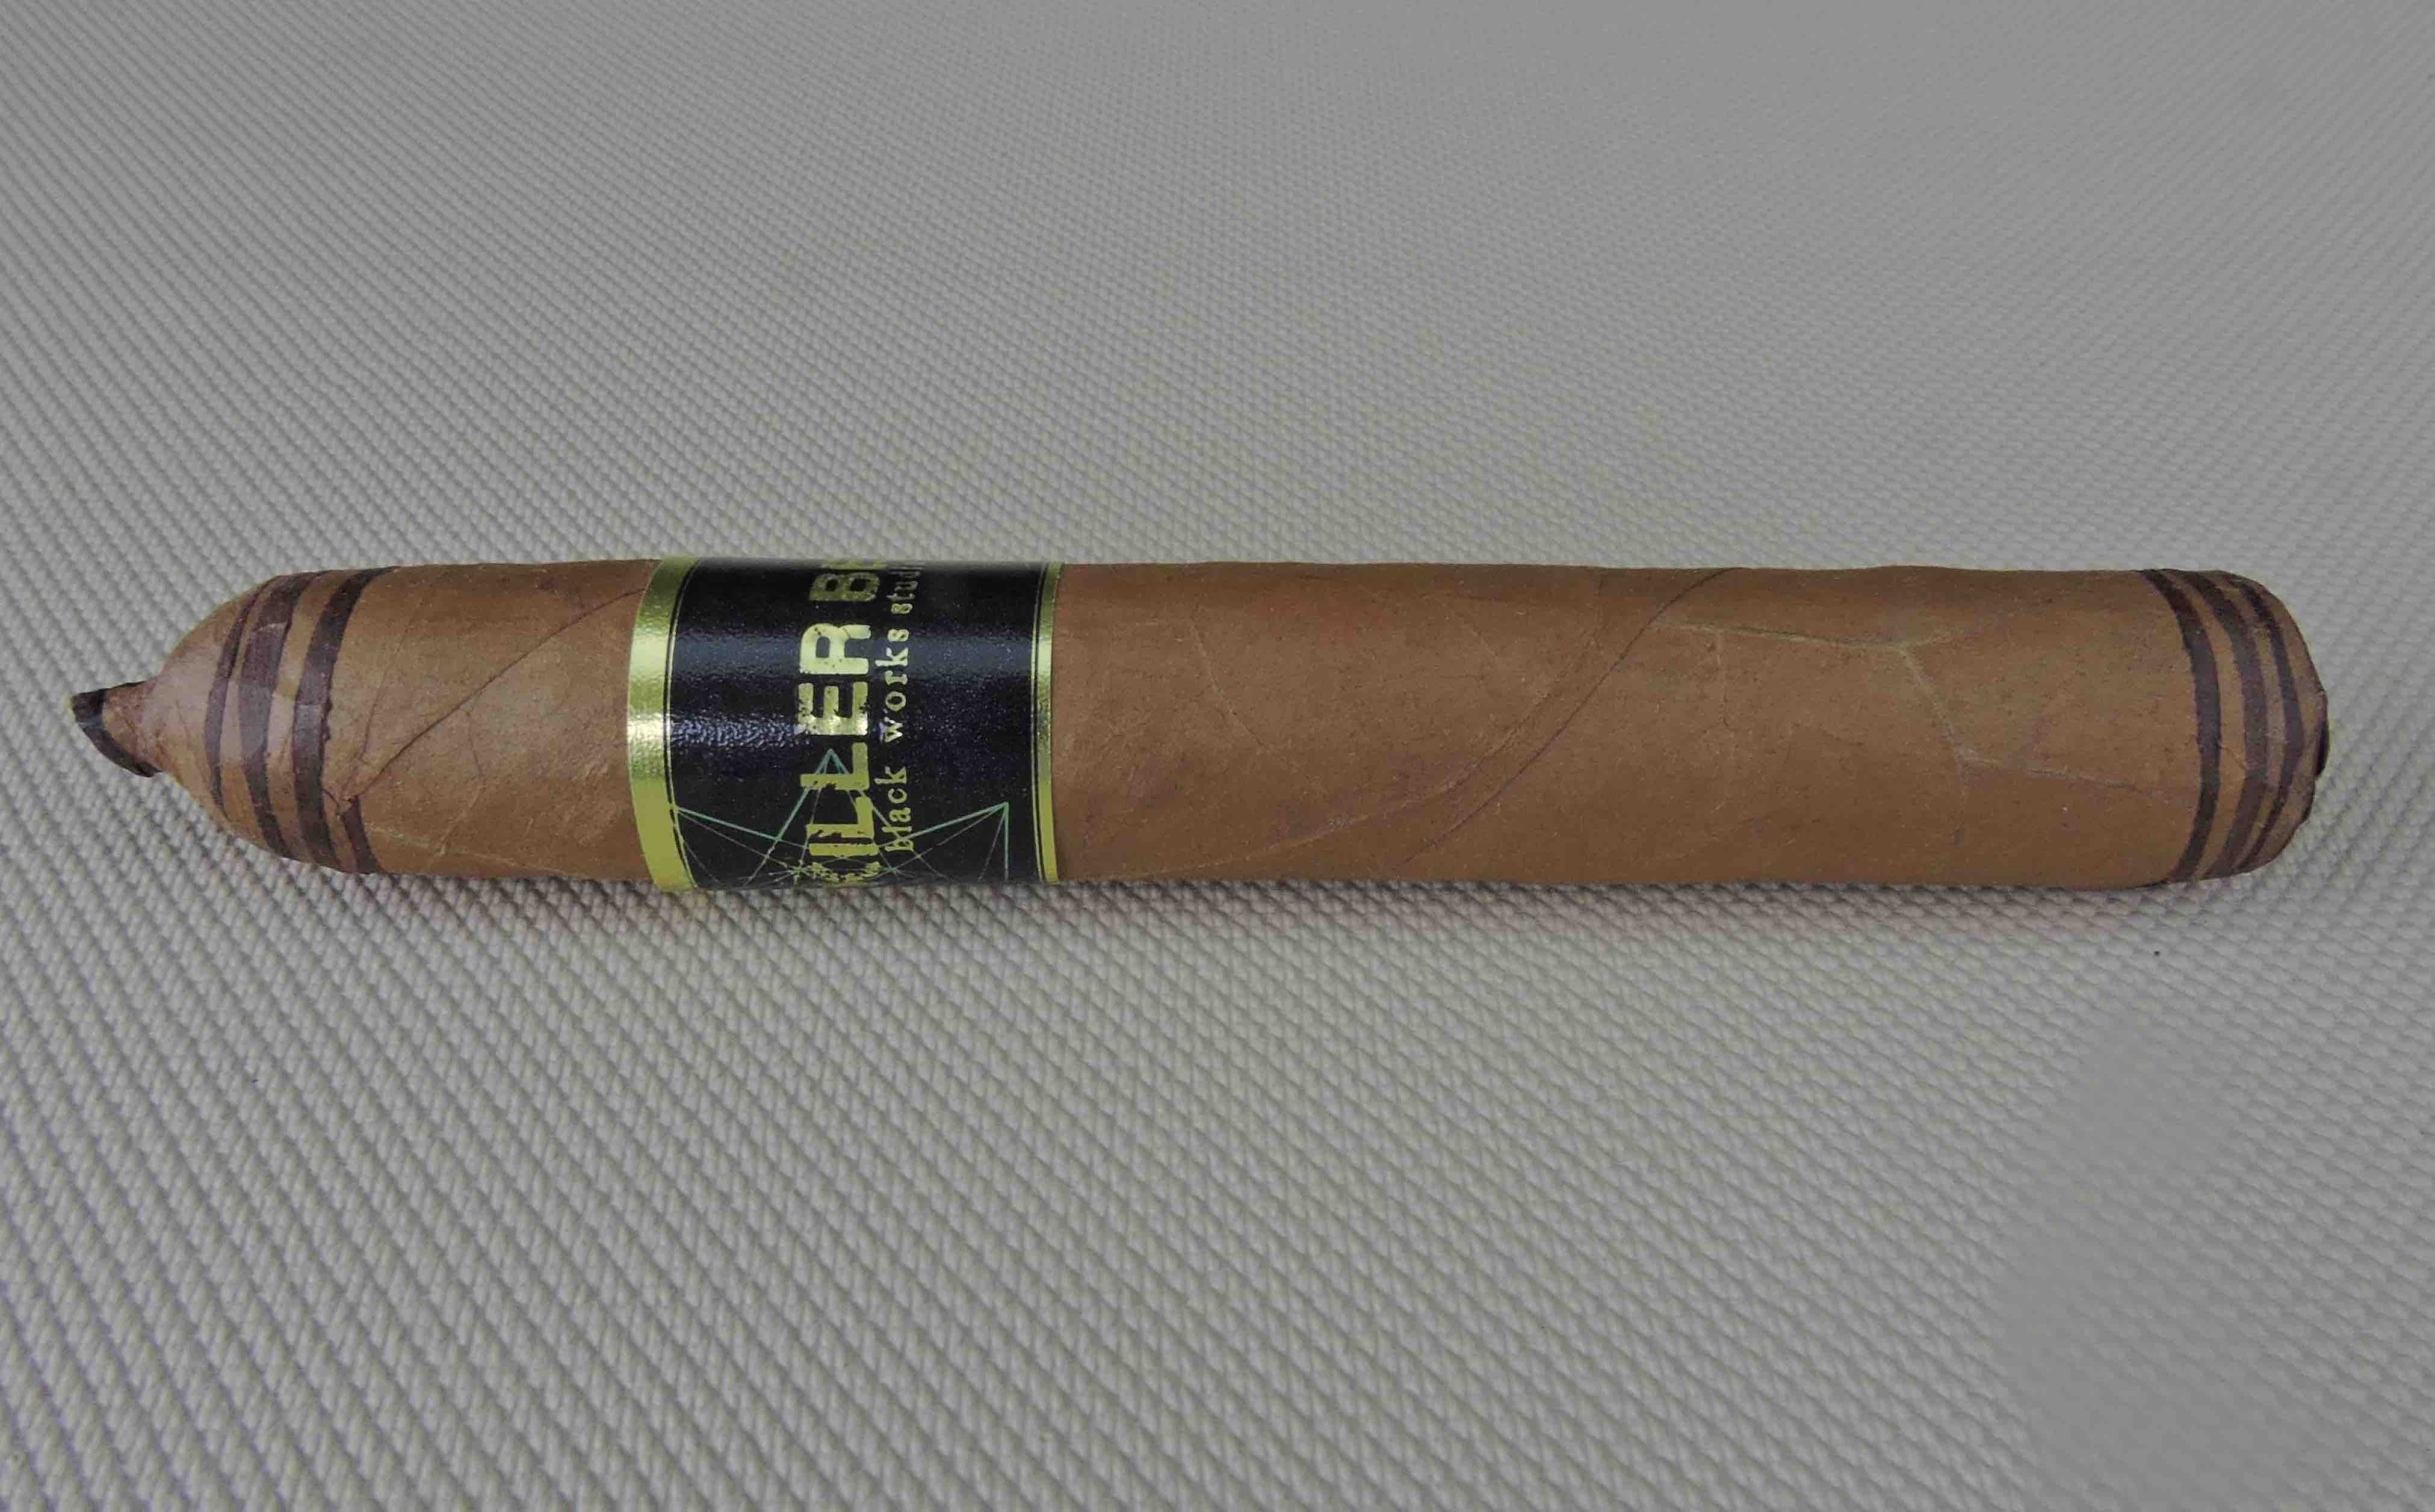 Cigar Review: Black Works Studio Killer Bee Connecticut (Petite Corona)